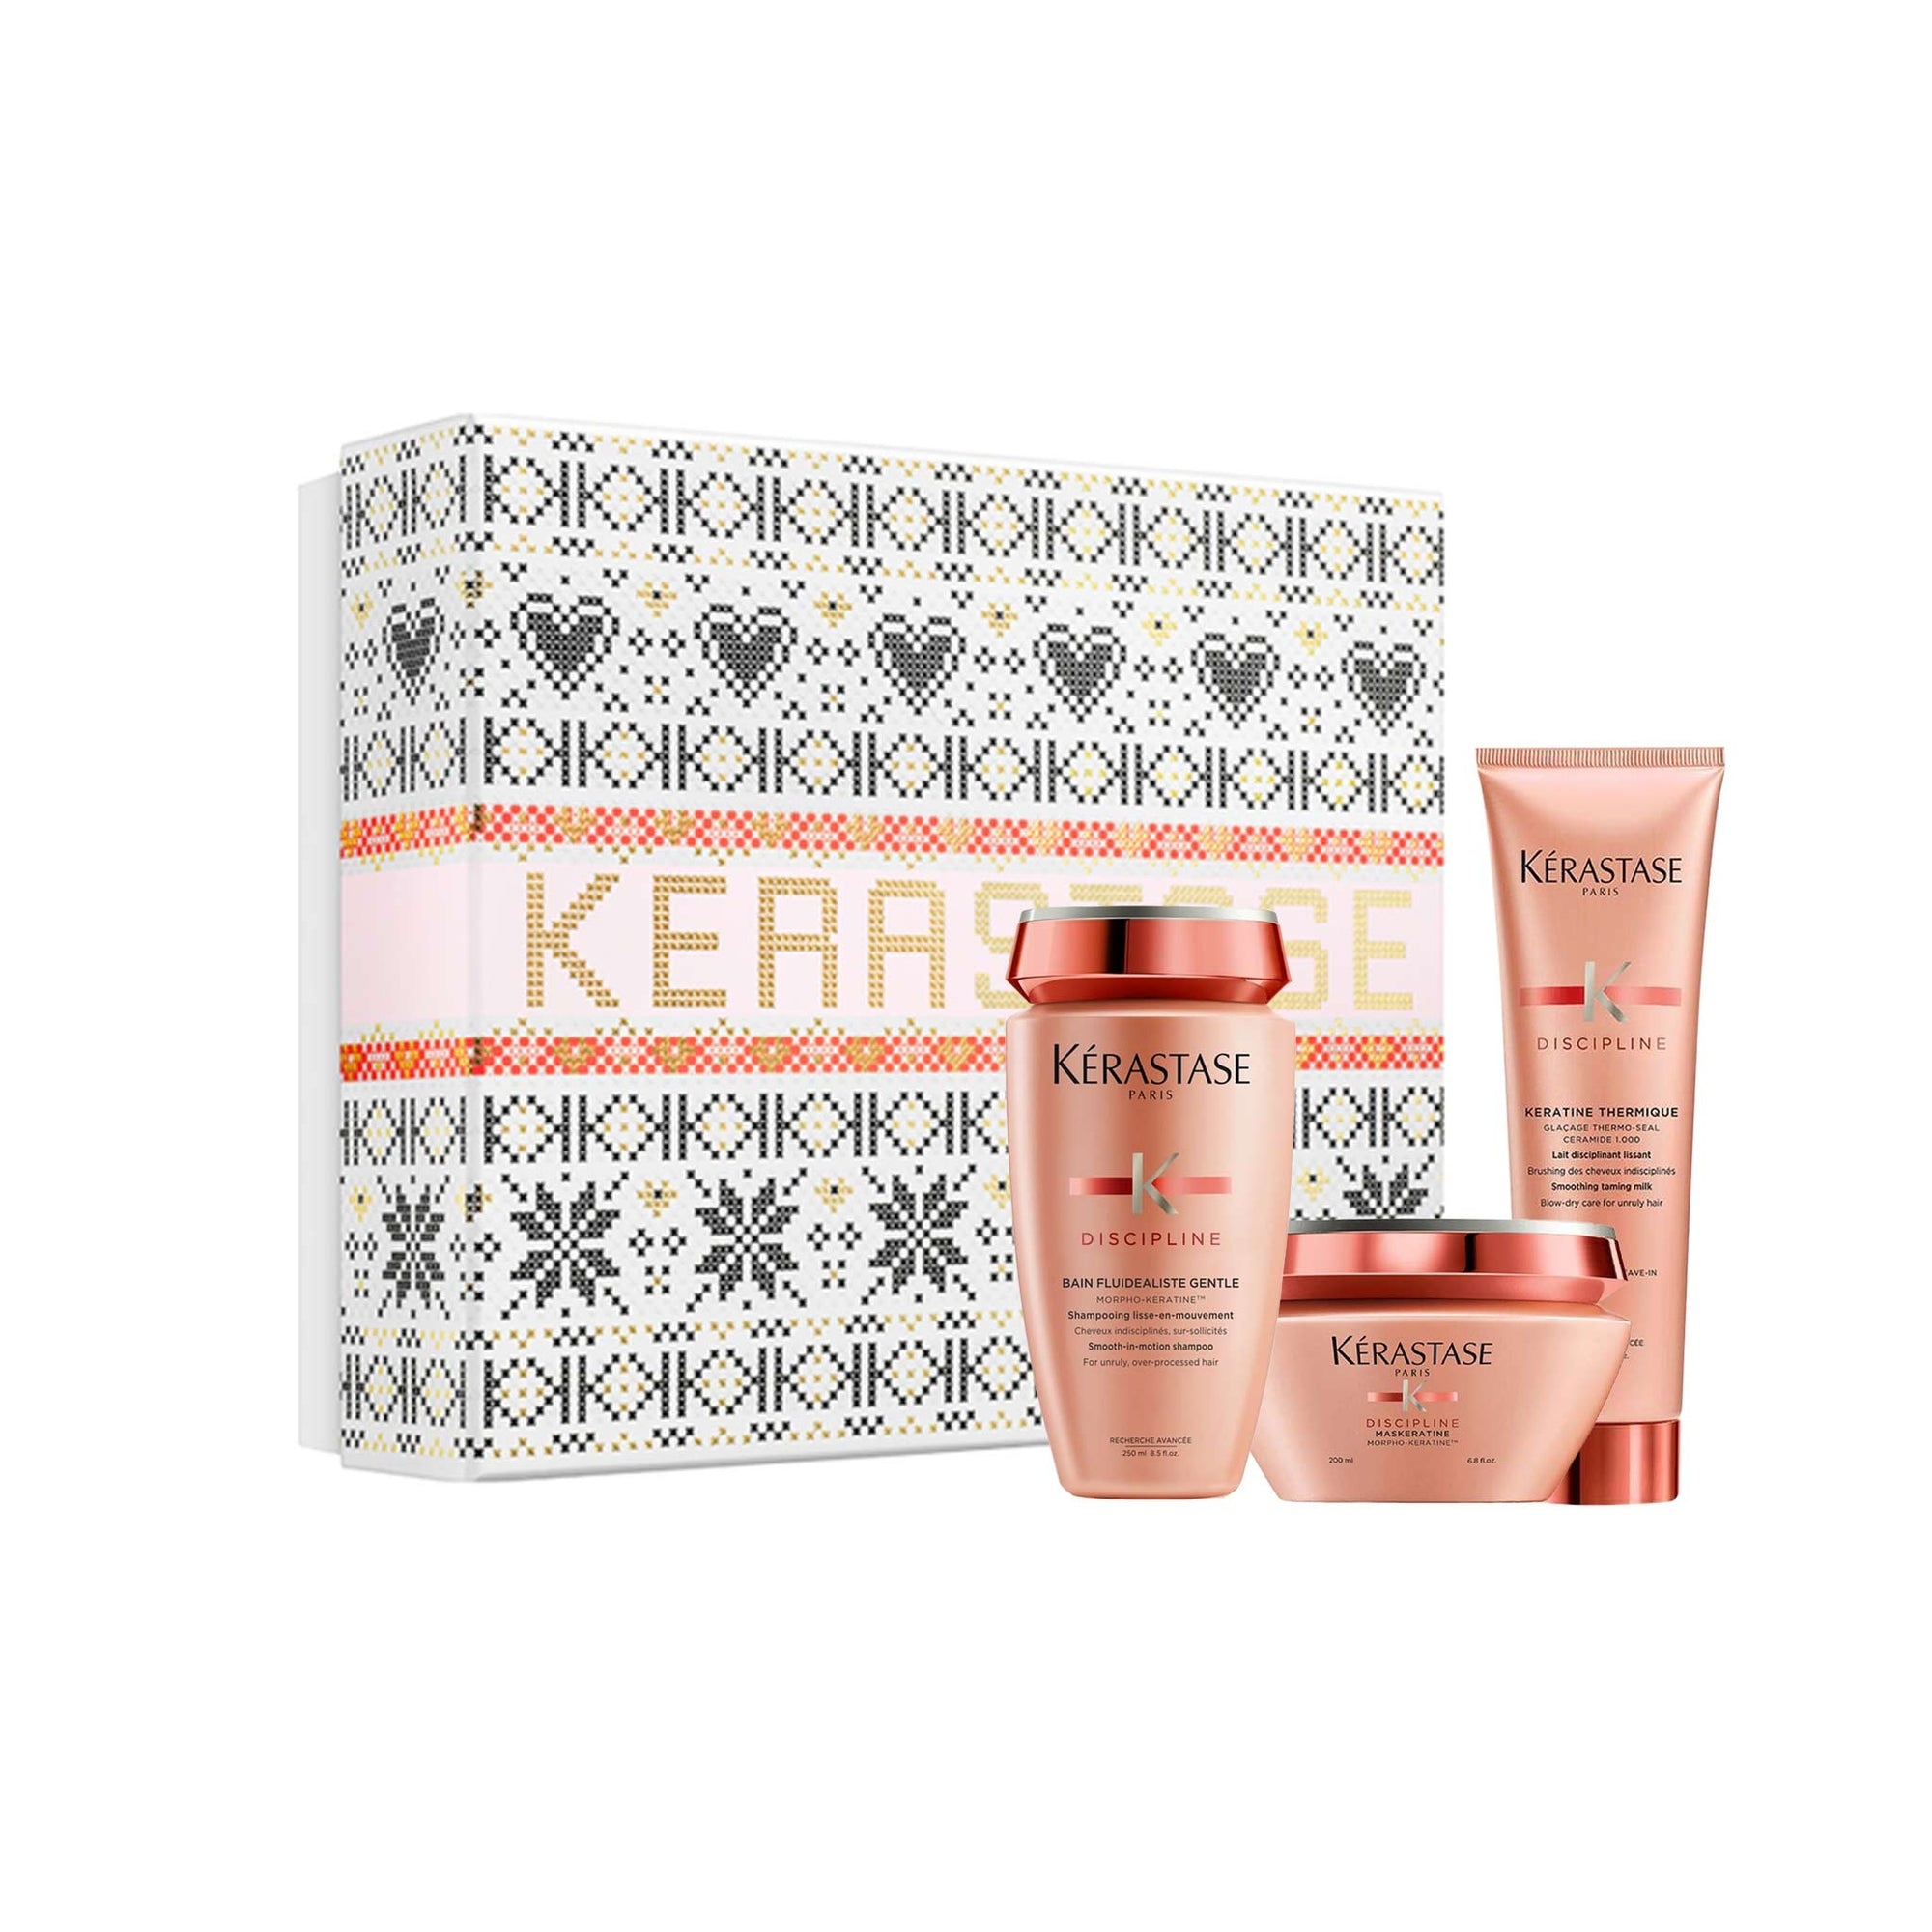 Kerastase Discipline Luxury Masque Gift Set For Smooth Frizz-Free Hair